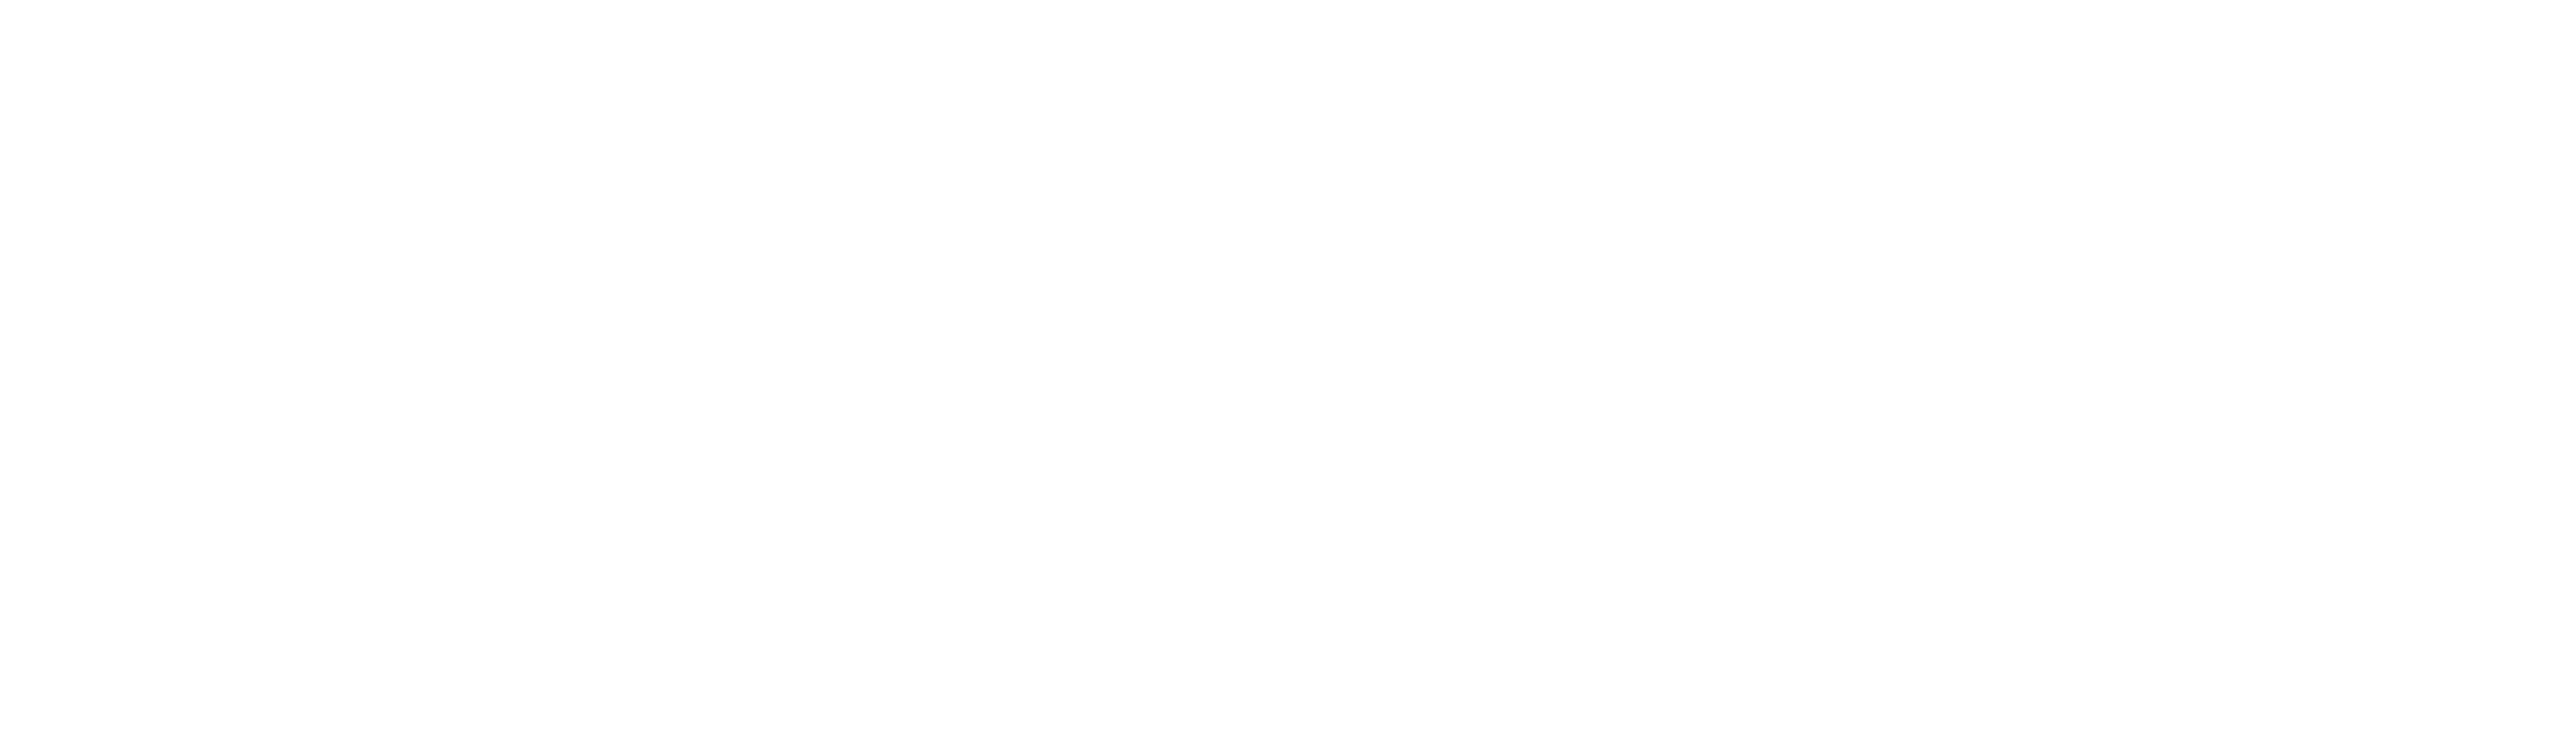 Online Counseling Degree Programs At Saybrook